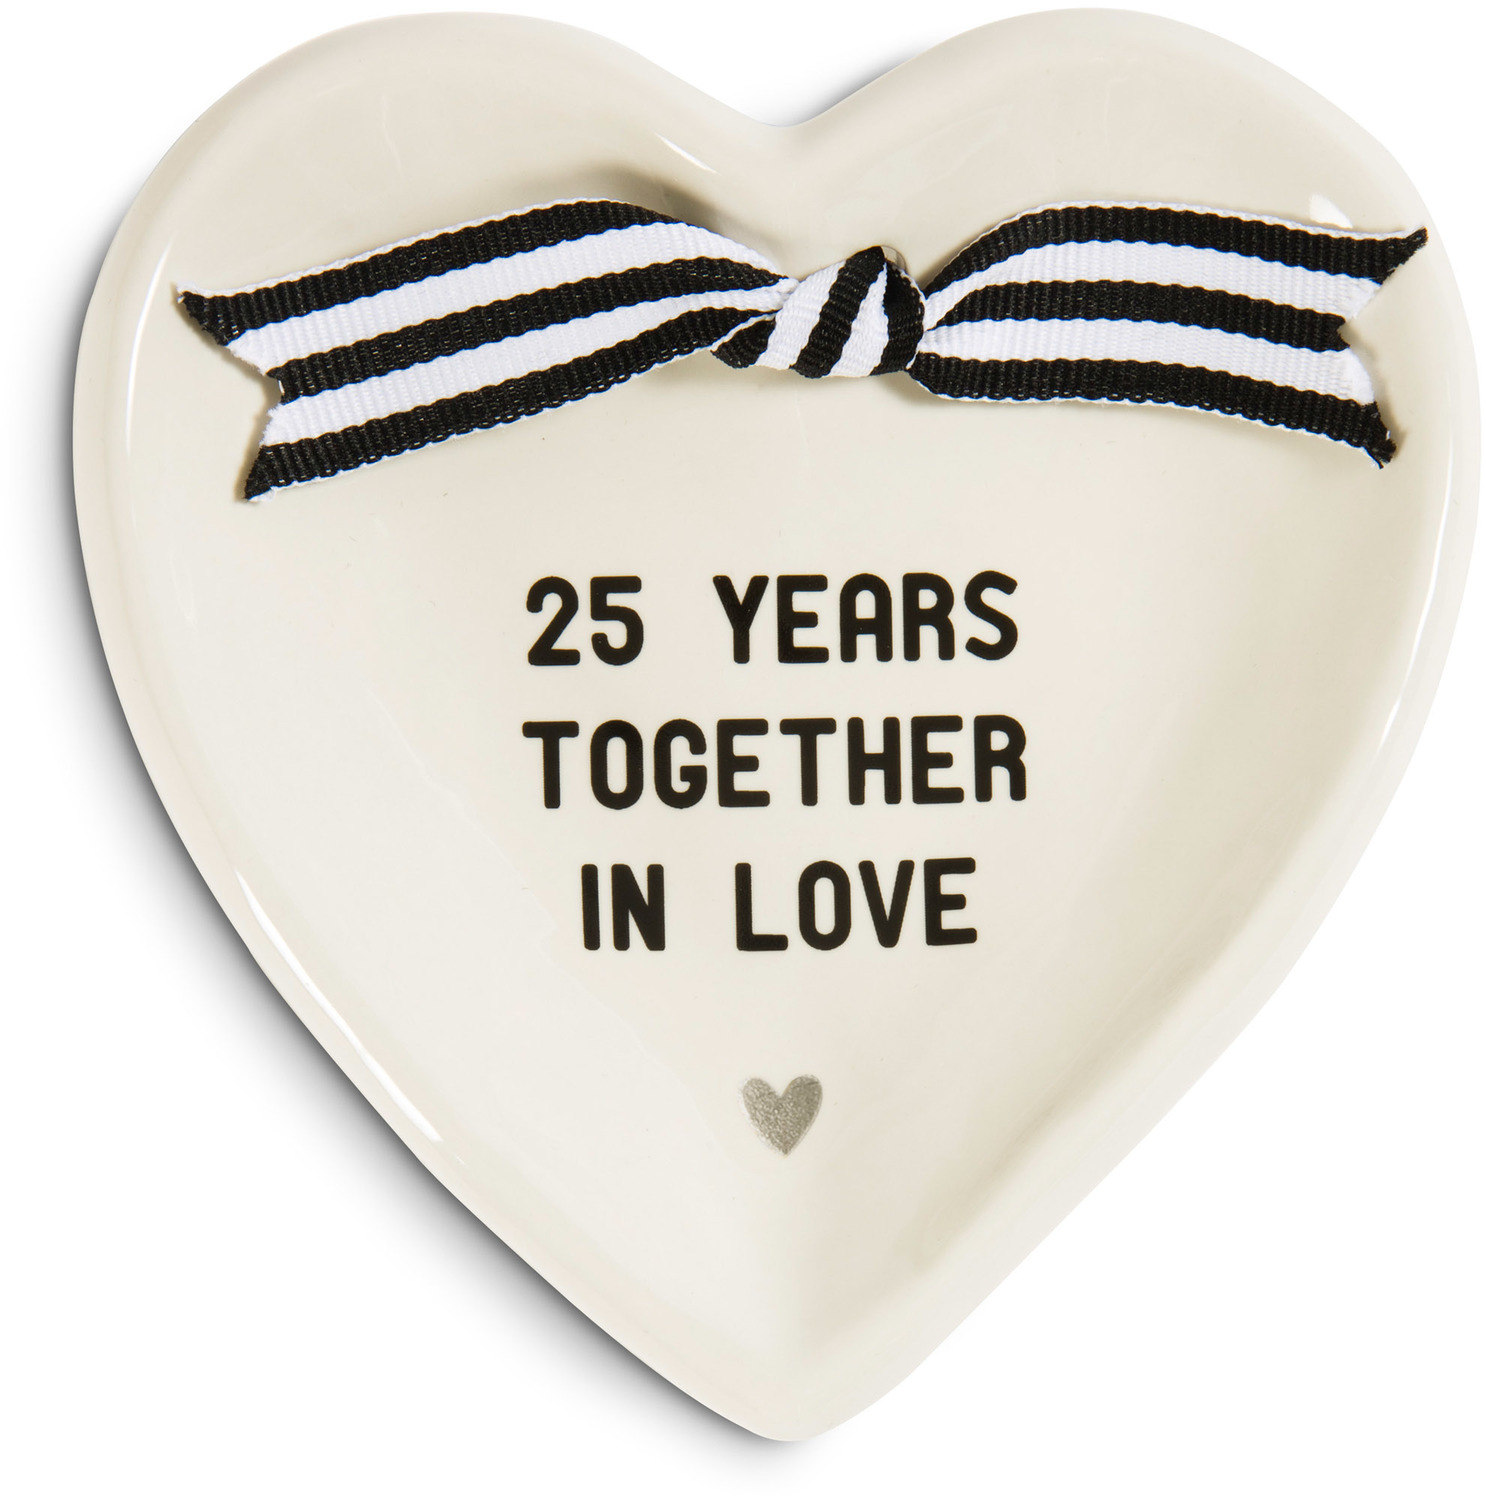 "25th Anniversary by The Milestone Collection - 25th Anniversary - 4.5"" x 4.5"" Heart-Shaped Keepsake Dish"